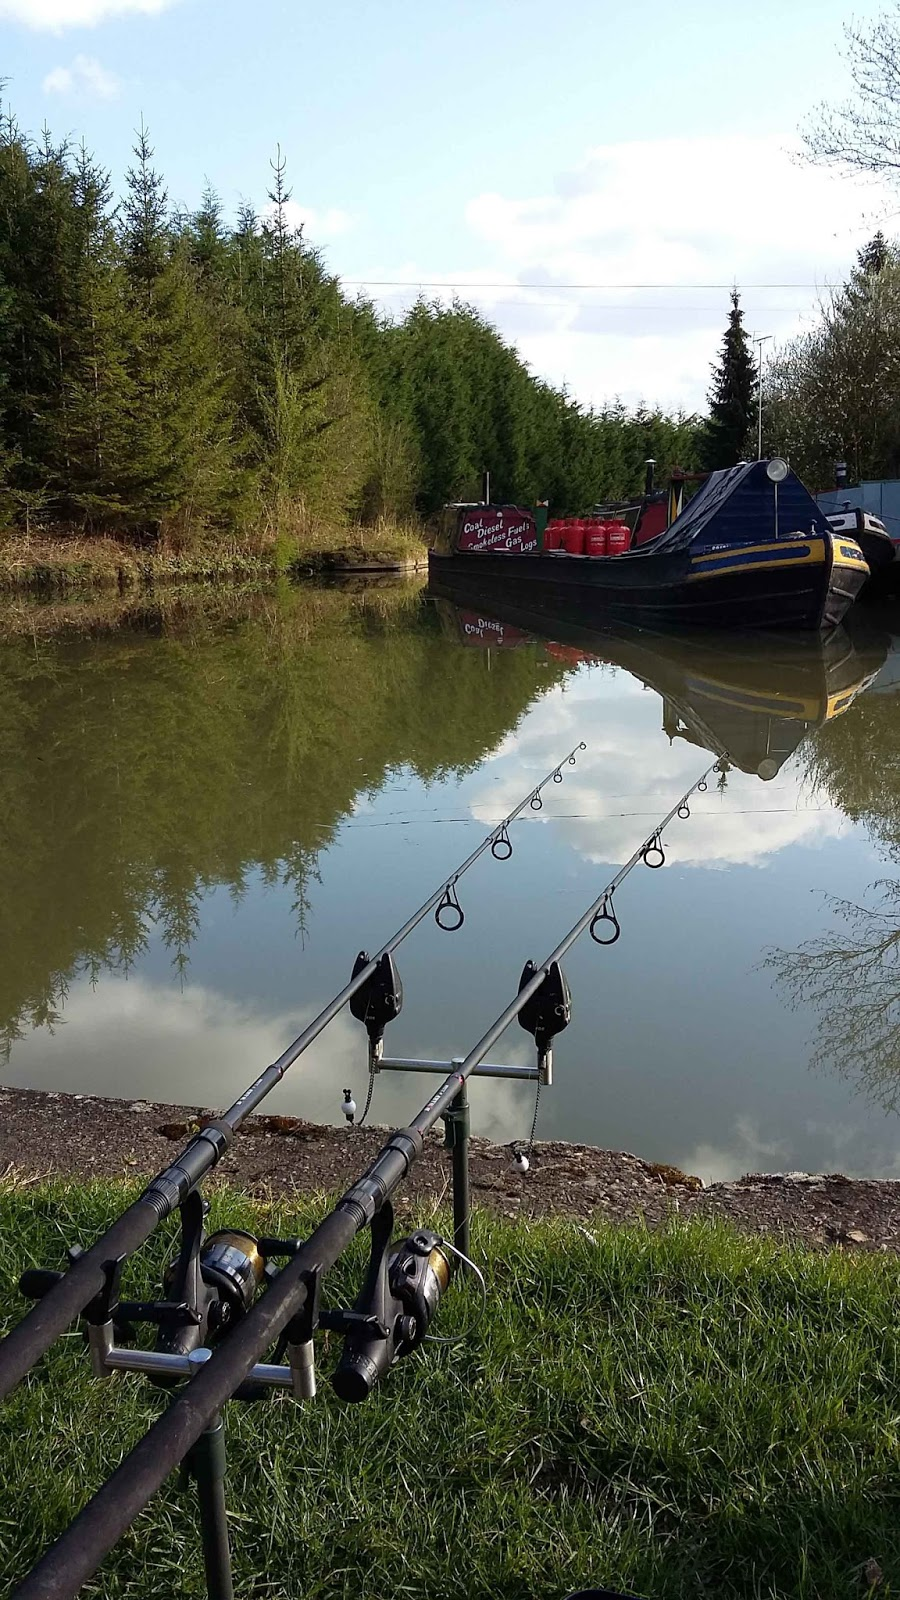 The lure of angling canal carp a crisis of confidence for Where can i buy worms for fishing near me